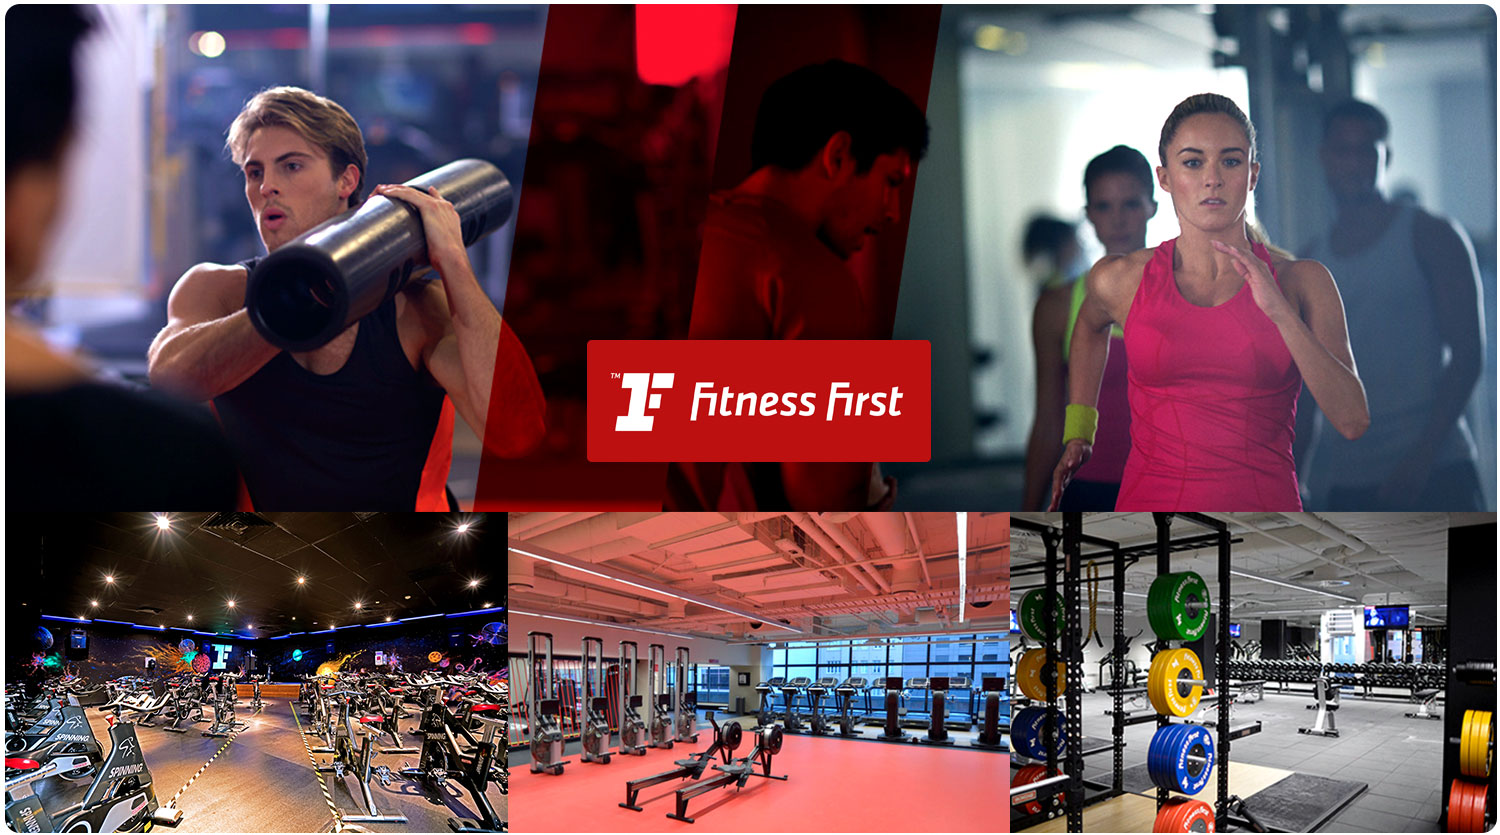 Start your Fitness Journey with Fitness First with only $9.95 for 1 week at Fitness First Newtown. Experience our first class gym and freestyle classes inc. Yoga, HIIT, Les Mills and more. Take the first step with Fitness First Newtown.